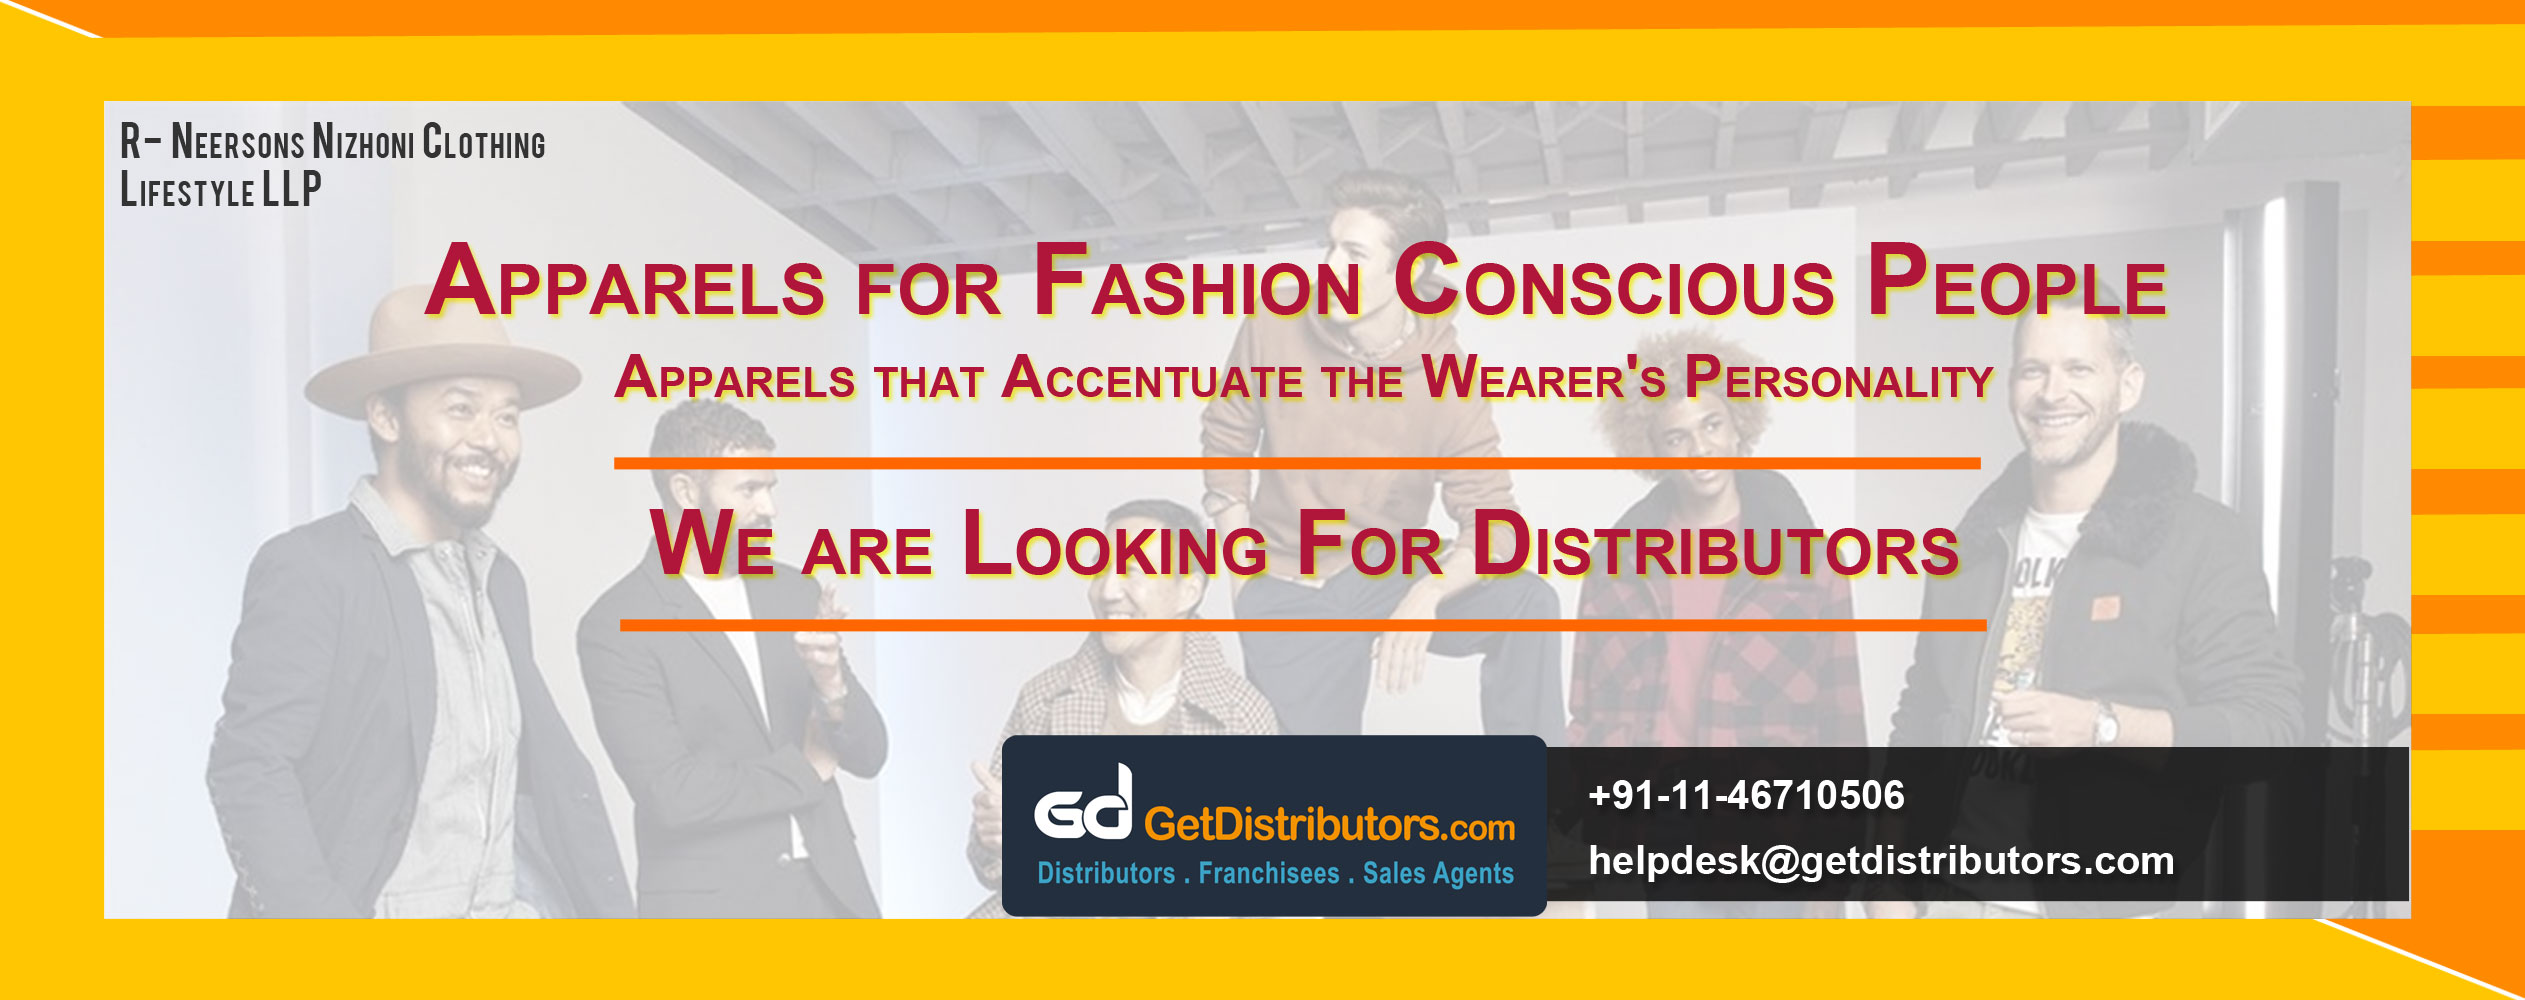 Our EYE catching apparels Looking for Distributor